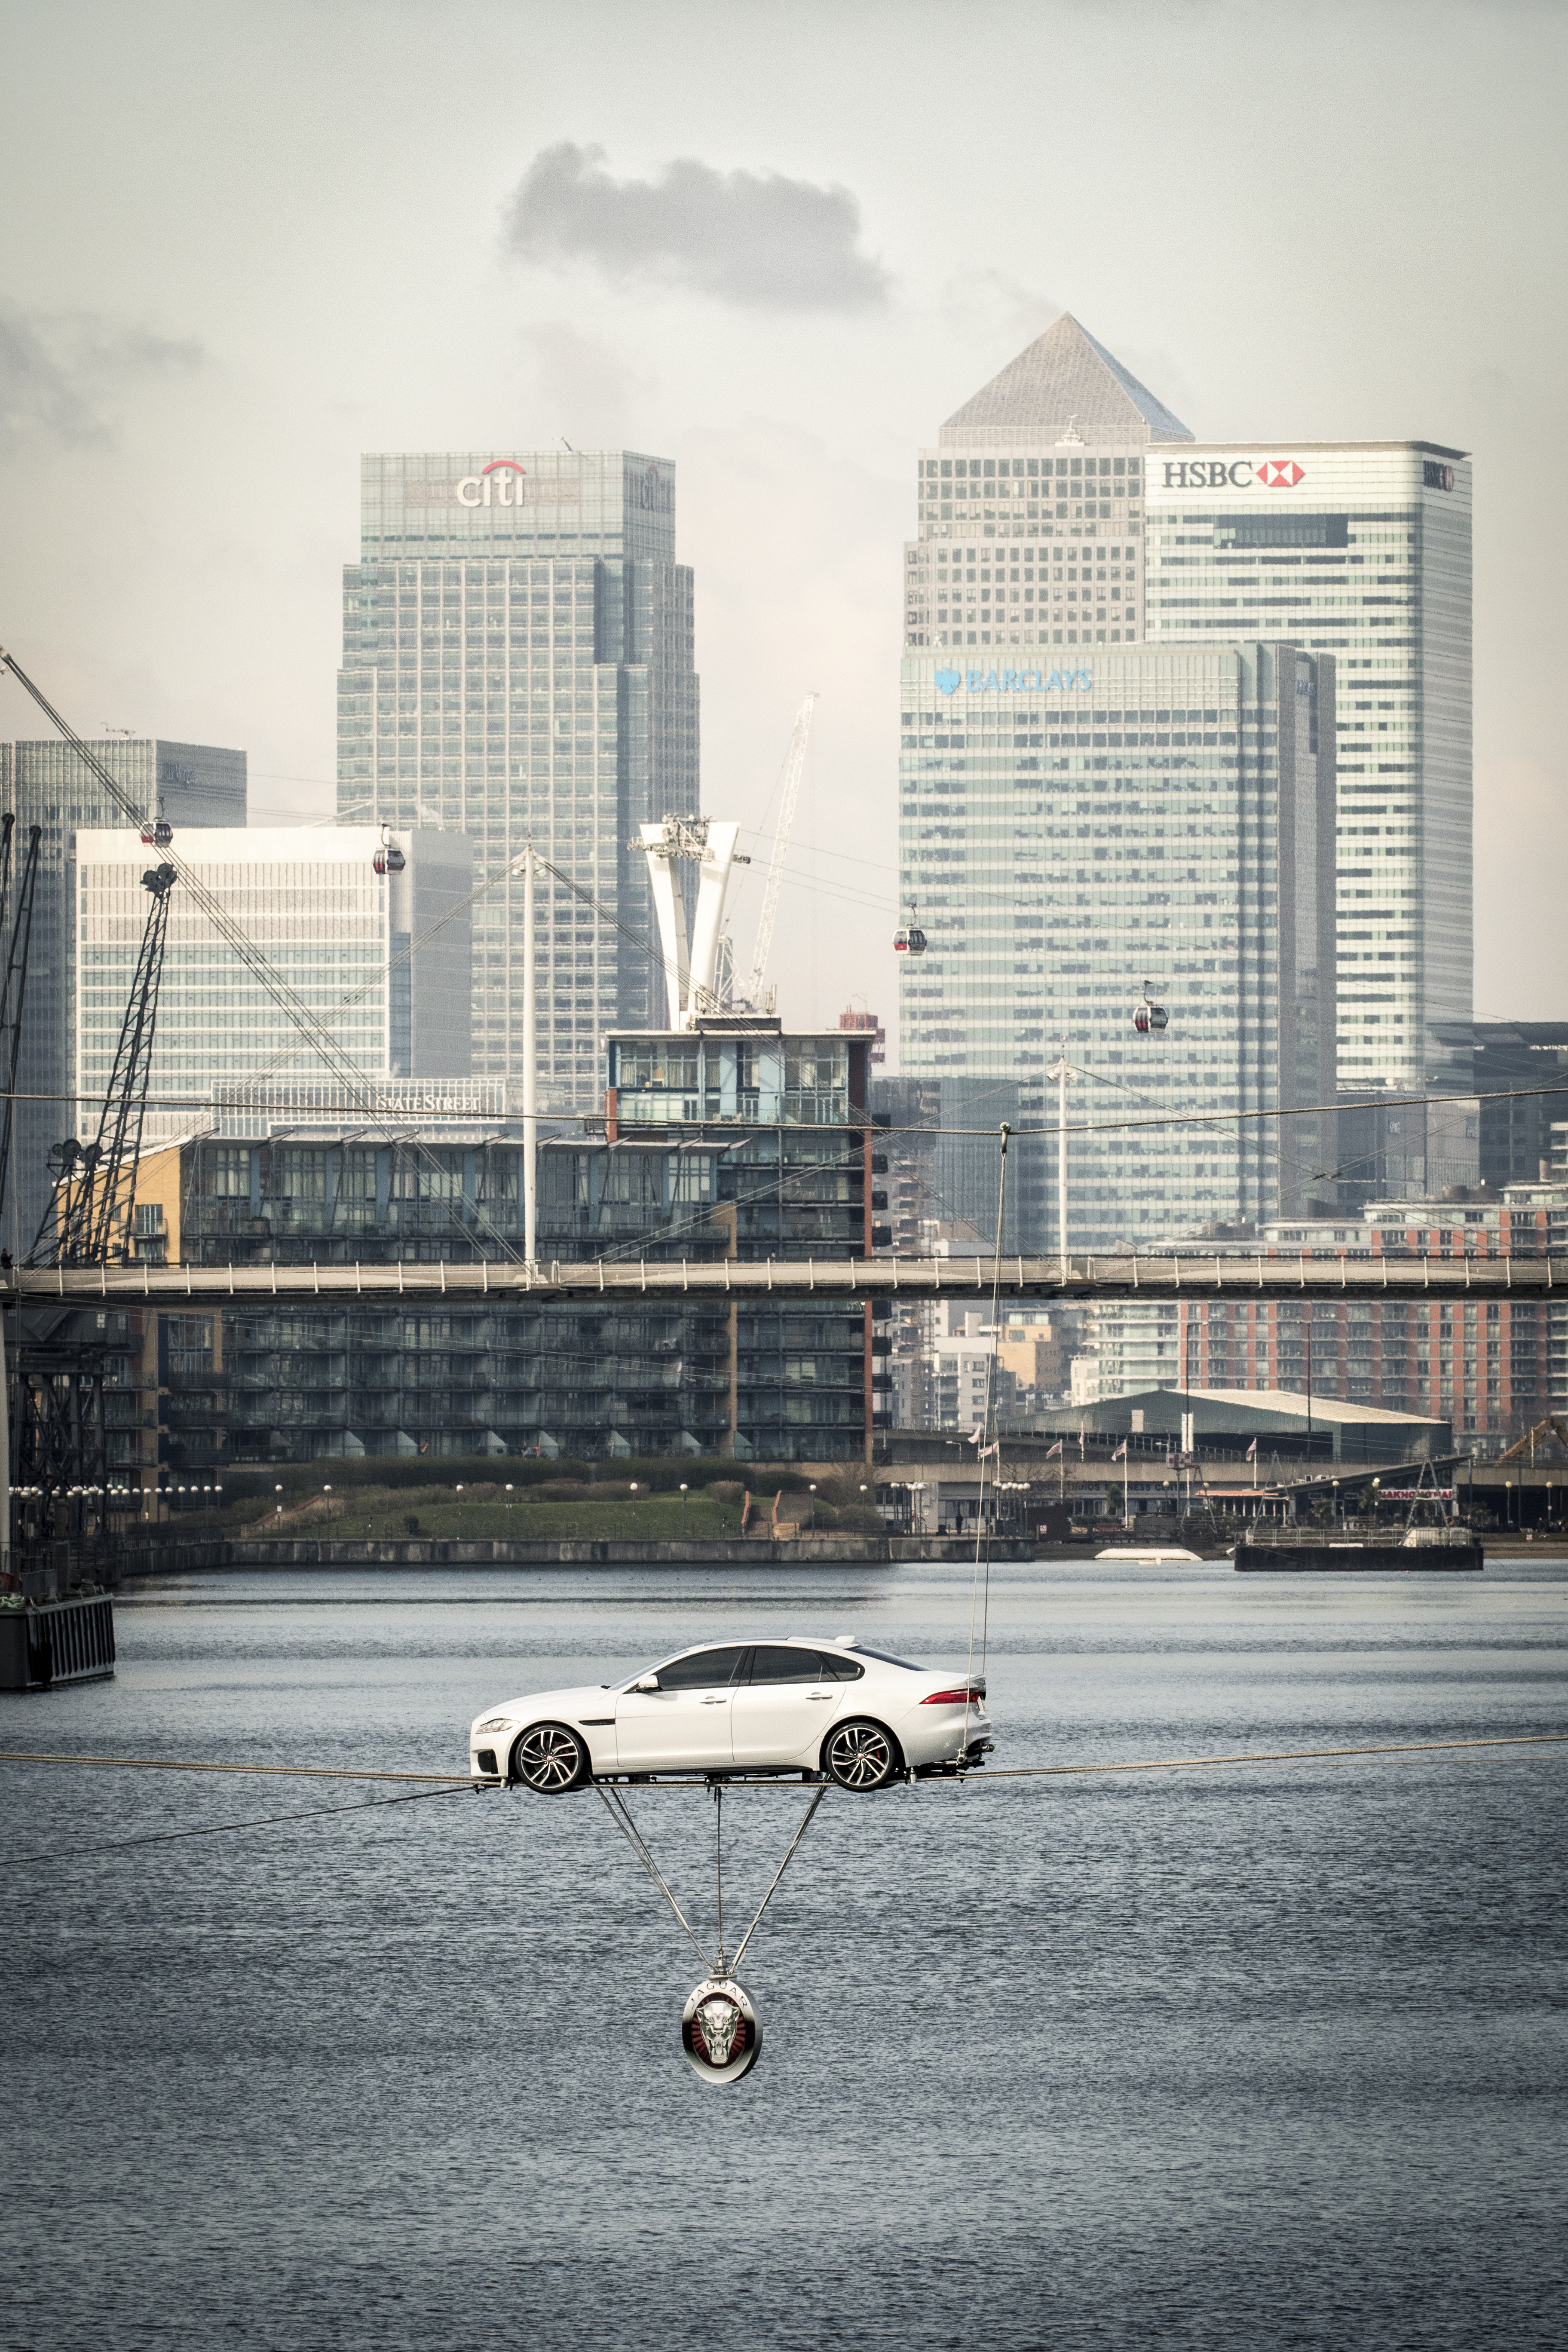 All-New Jaguar XF Performs World's Longest High-Wire Water